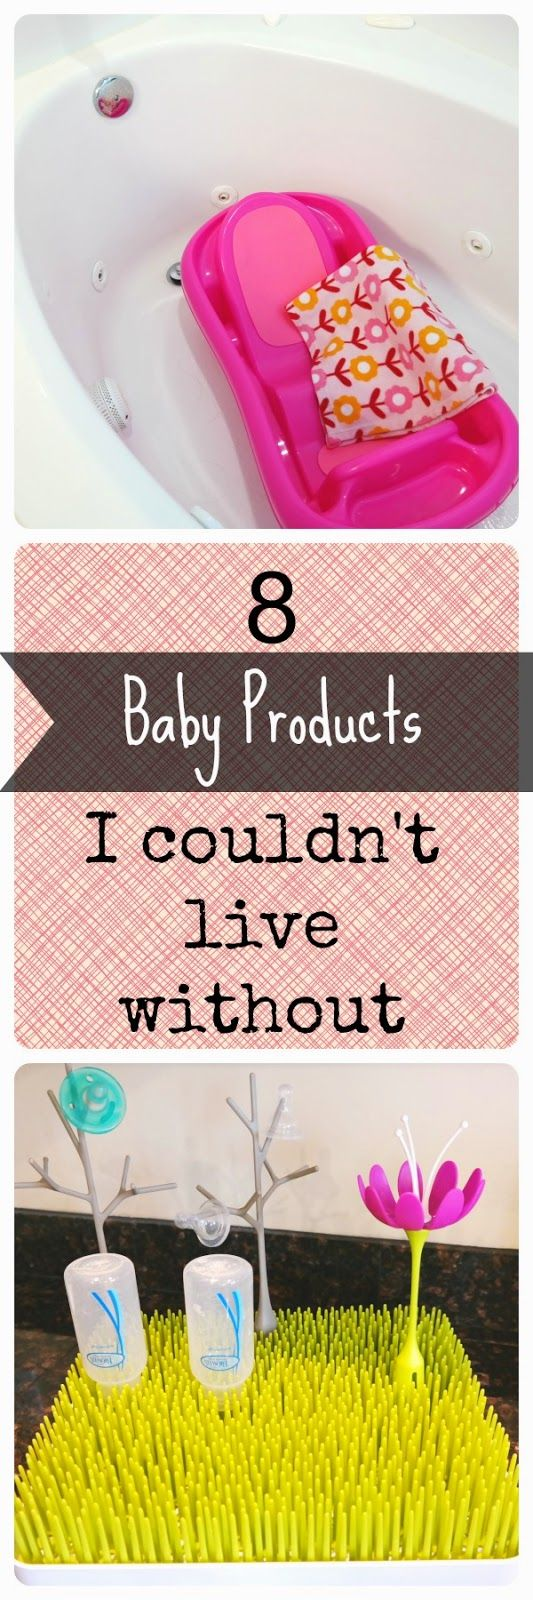 411 best Babies and Nesting images on Pinterest | Child room, Baby ...